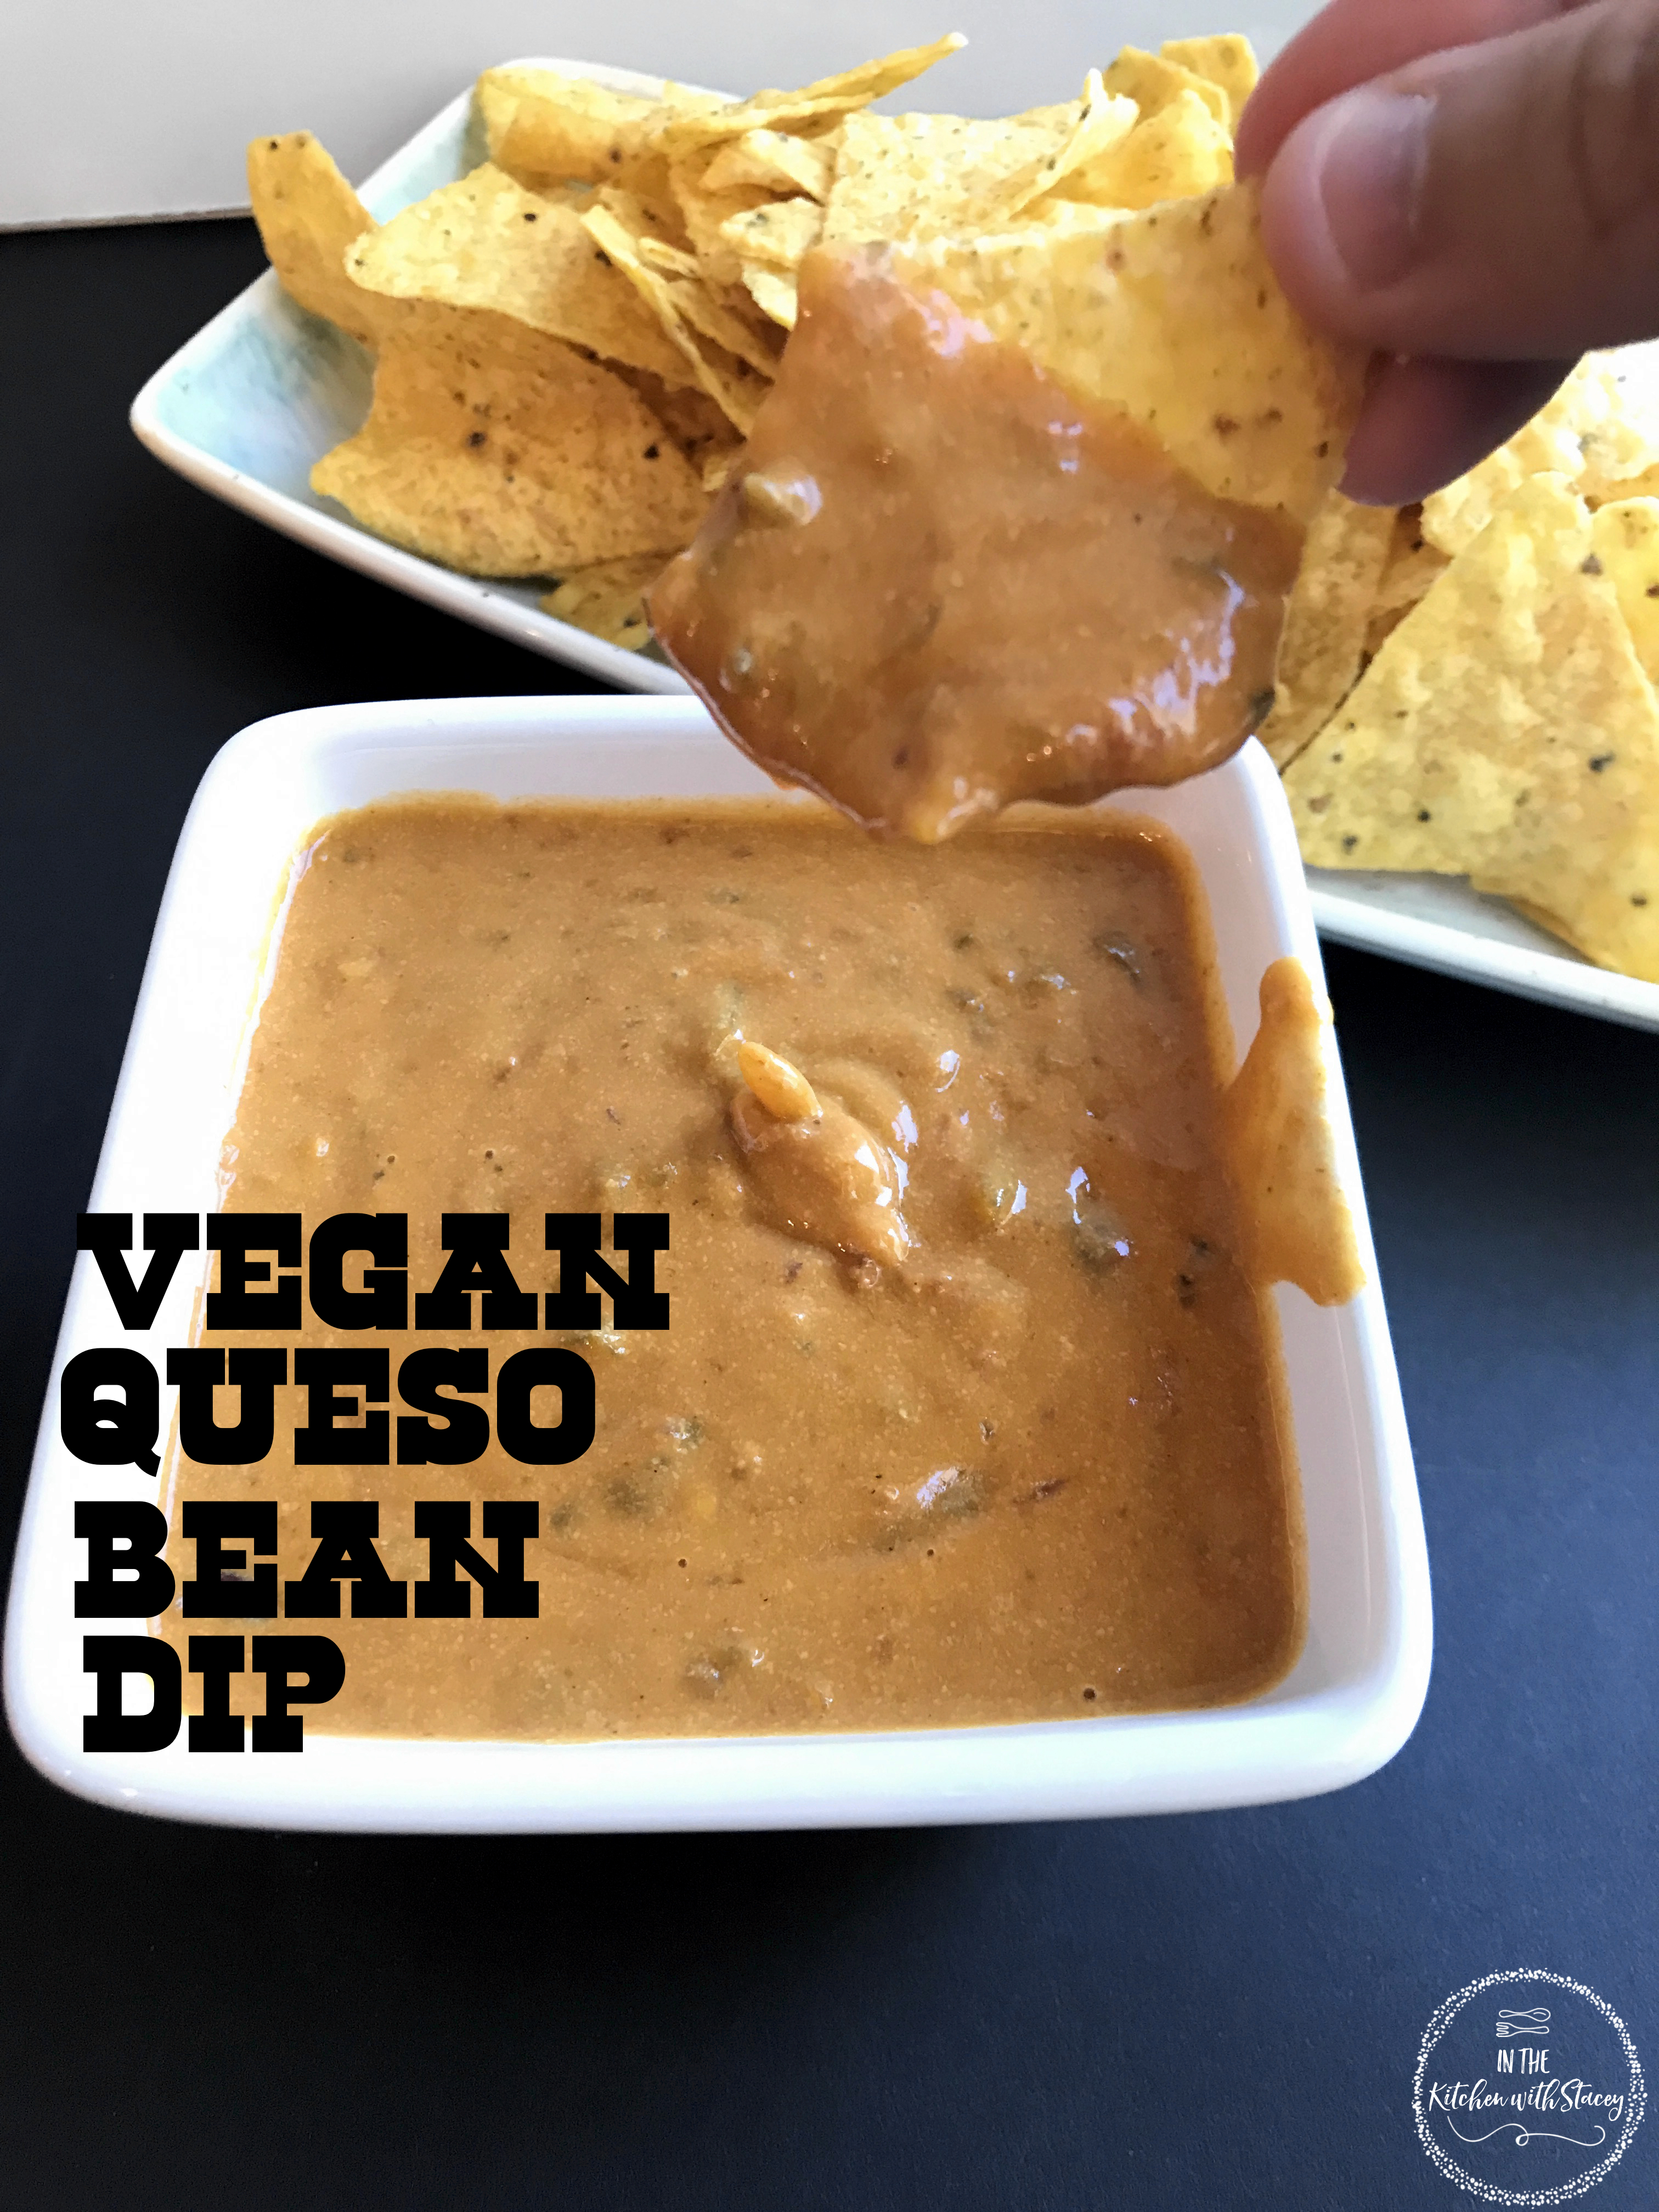 vegan queso bean dip